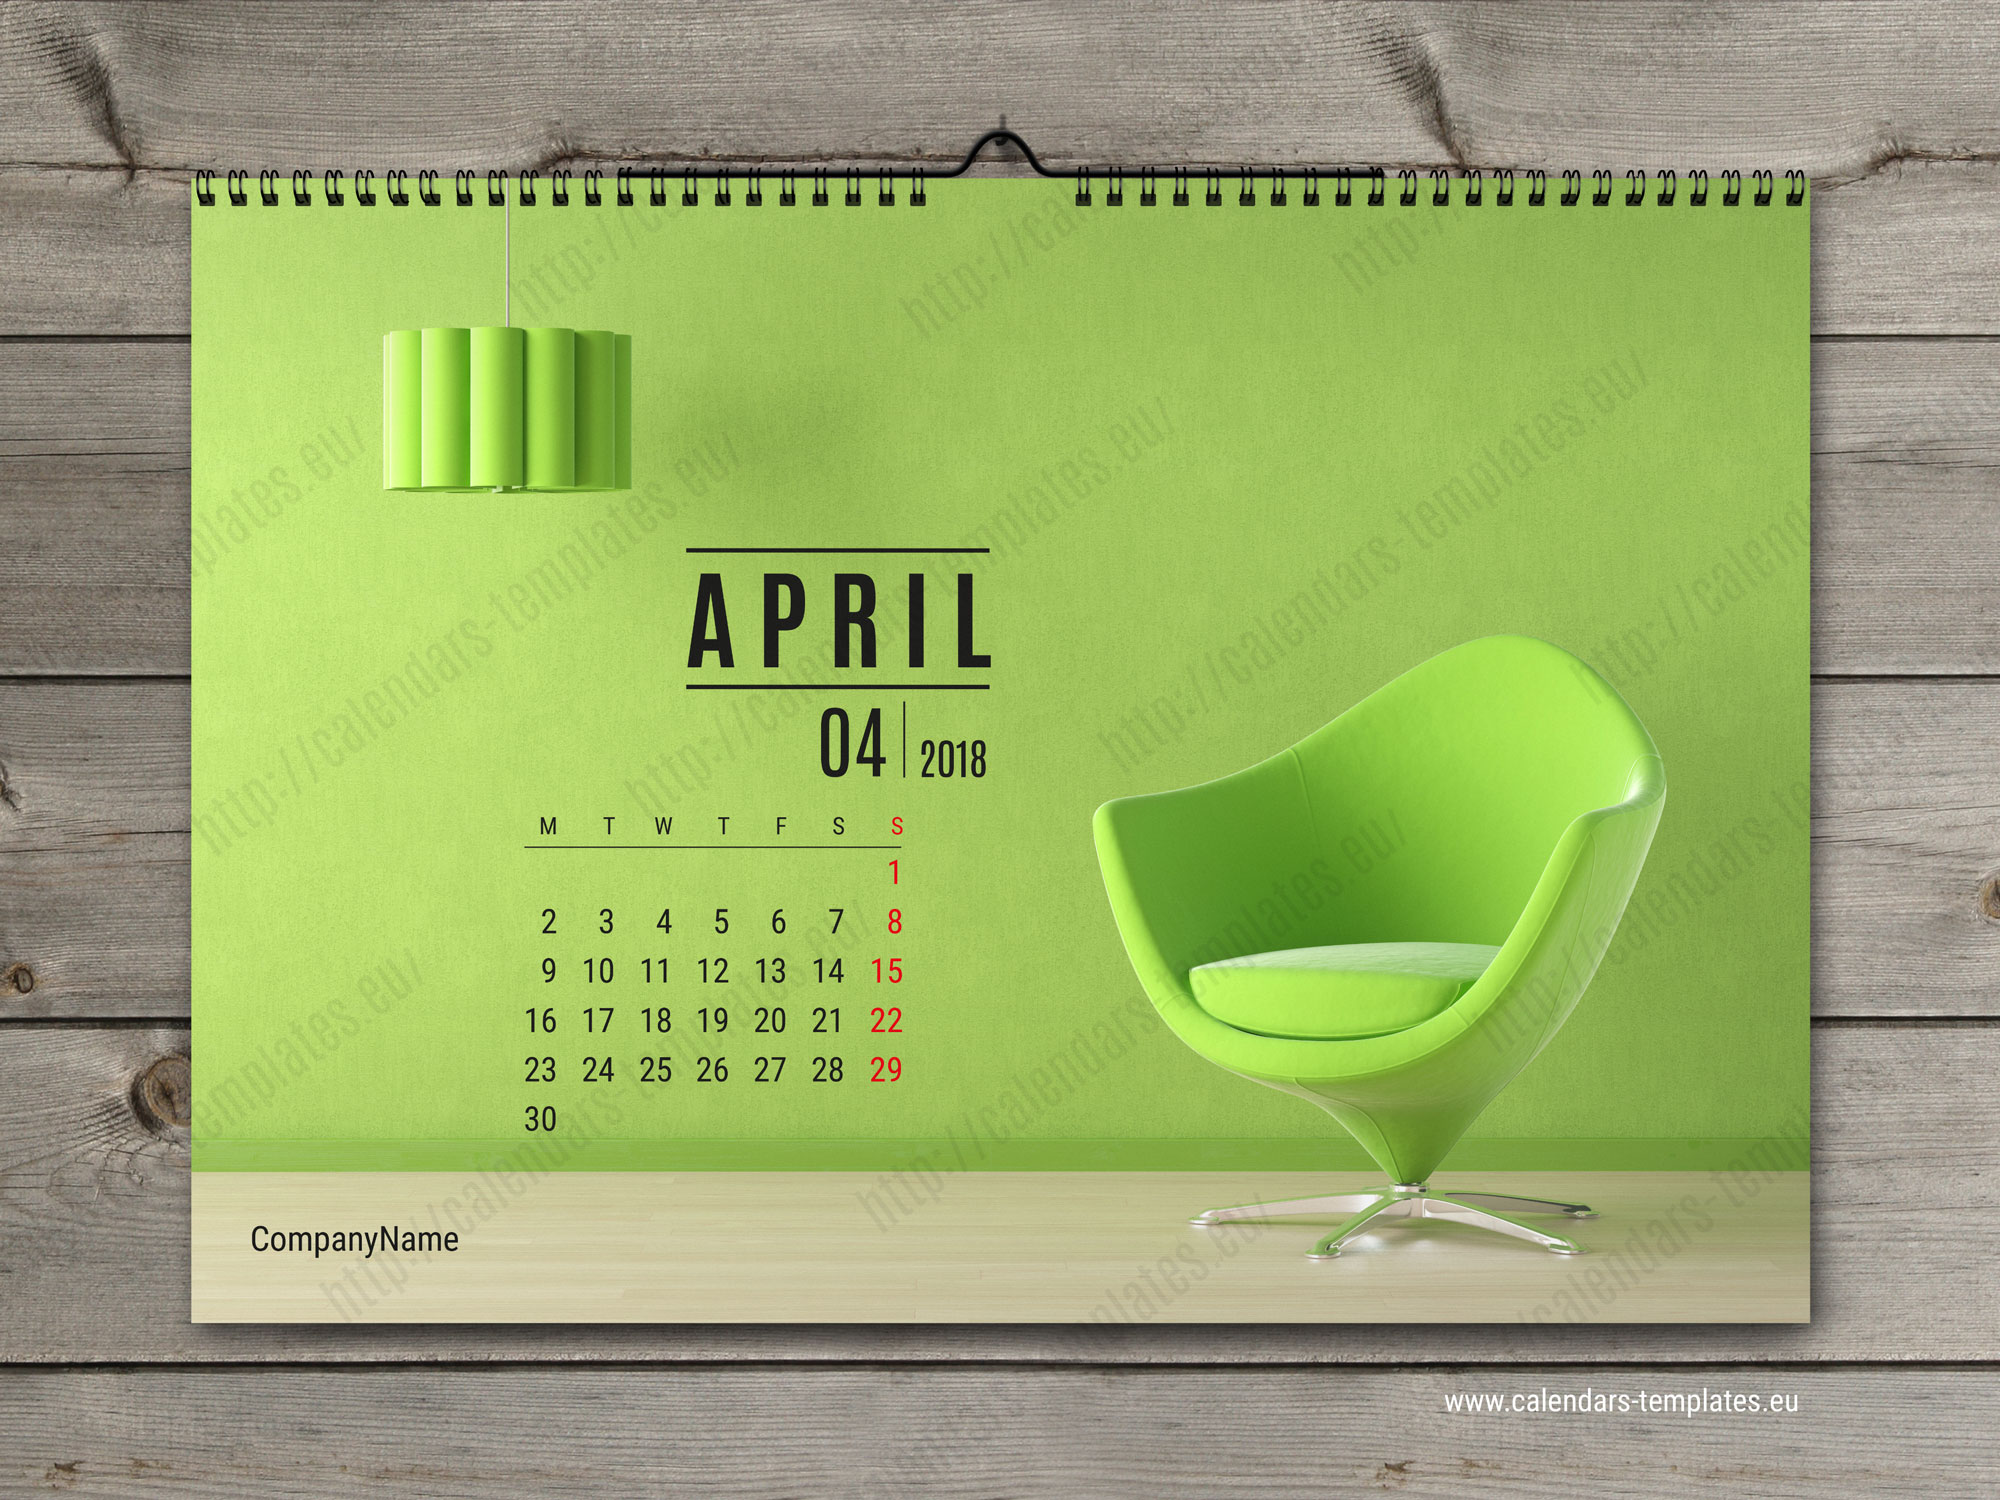 Horizontal Calendar Design : Monthly calendar template photo wall horizontal